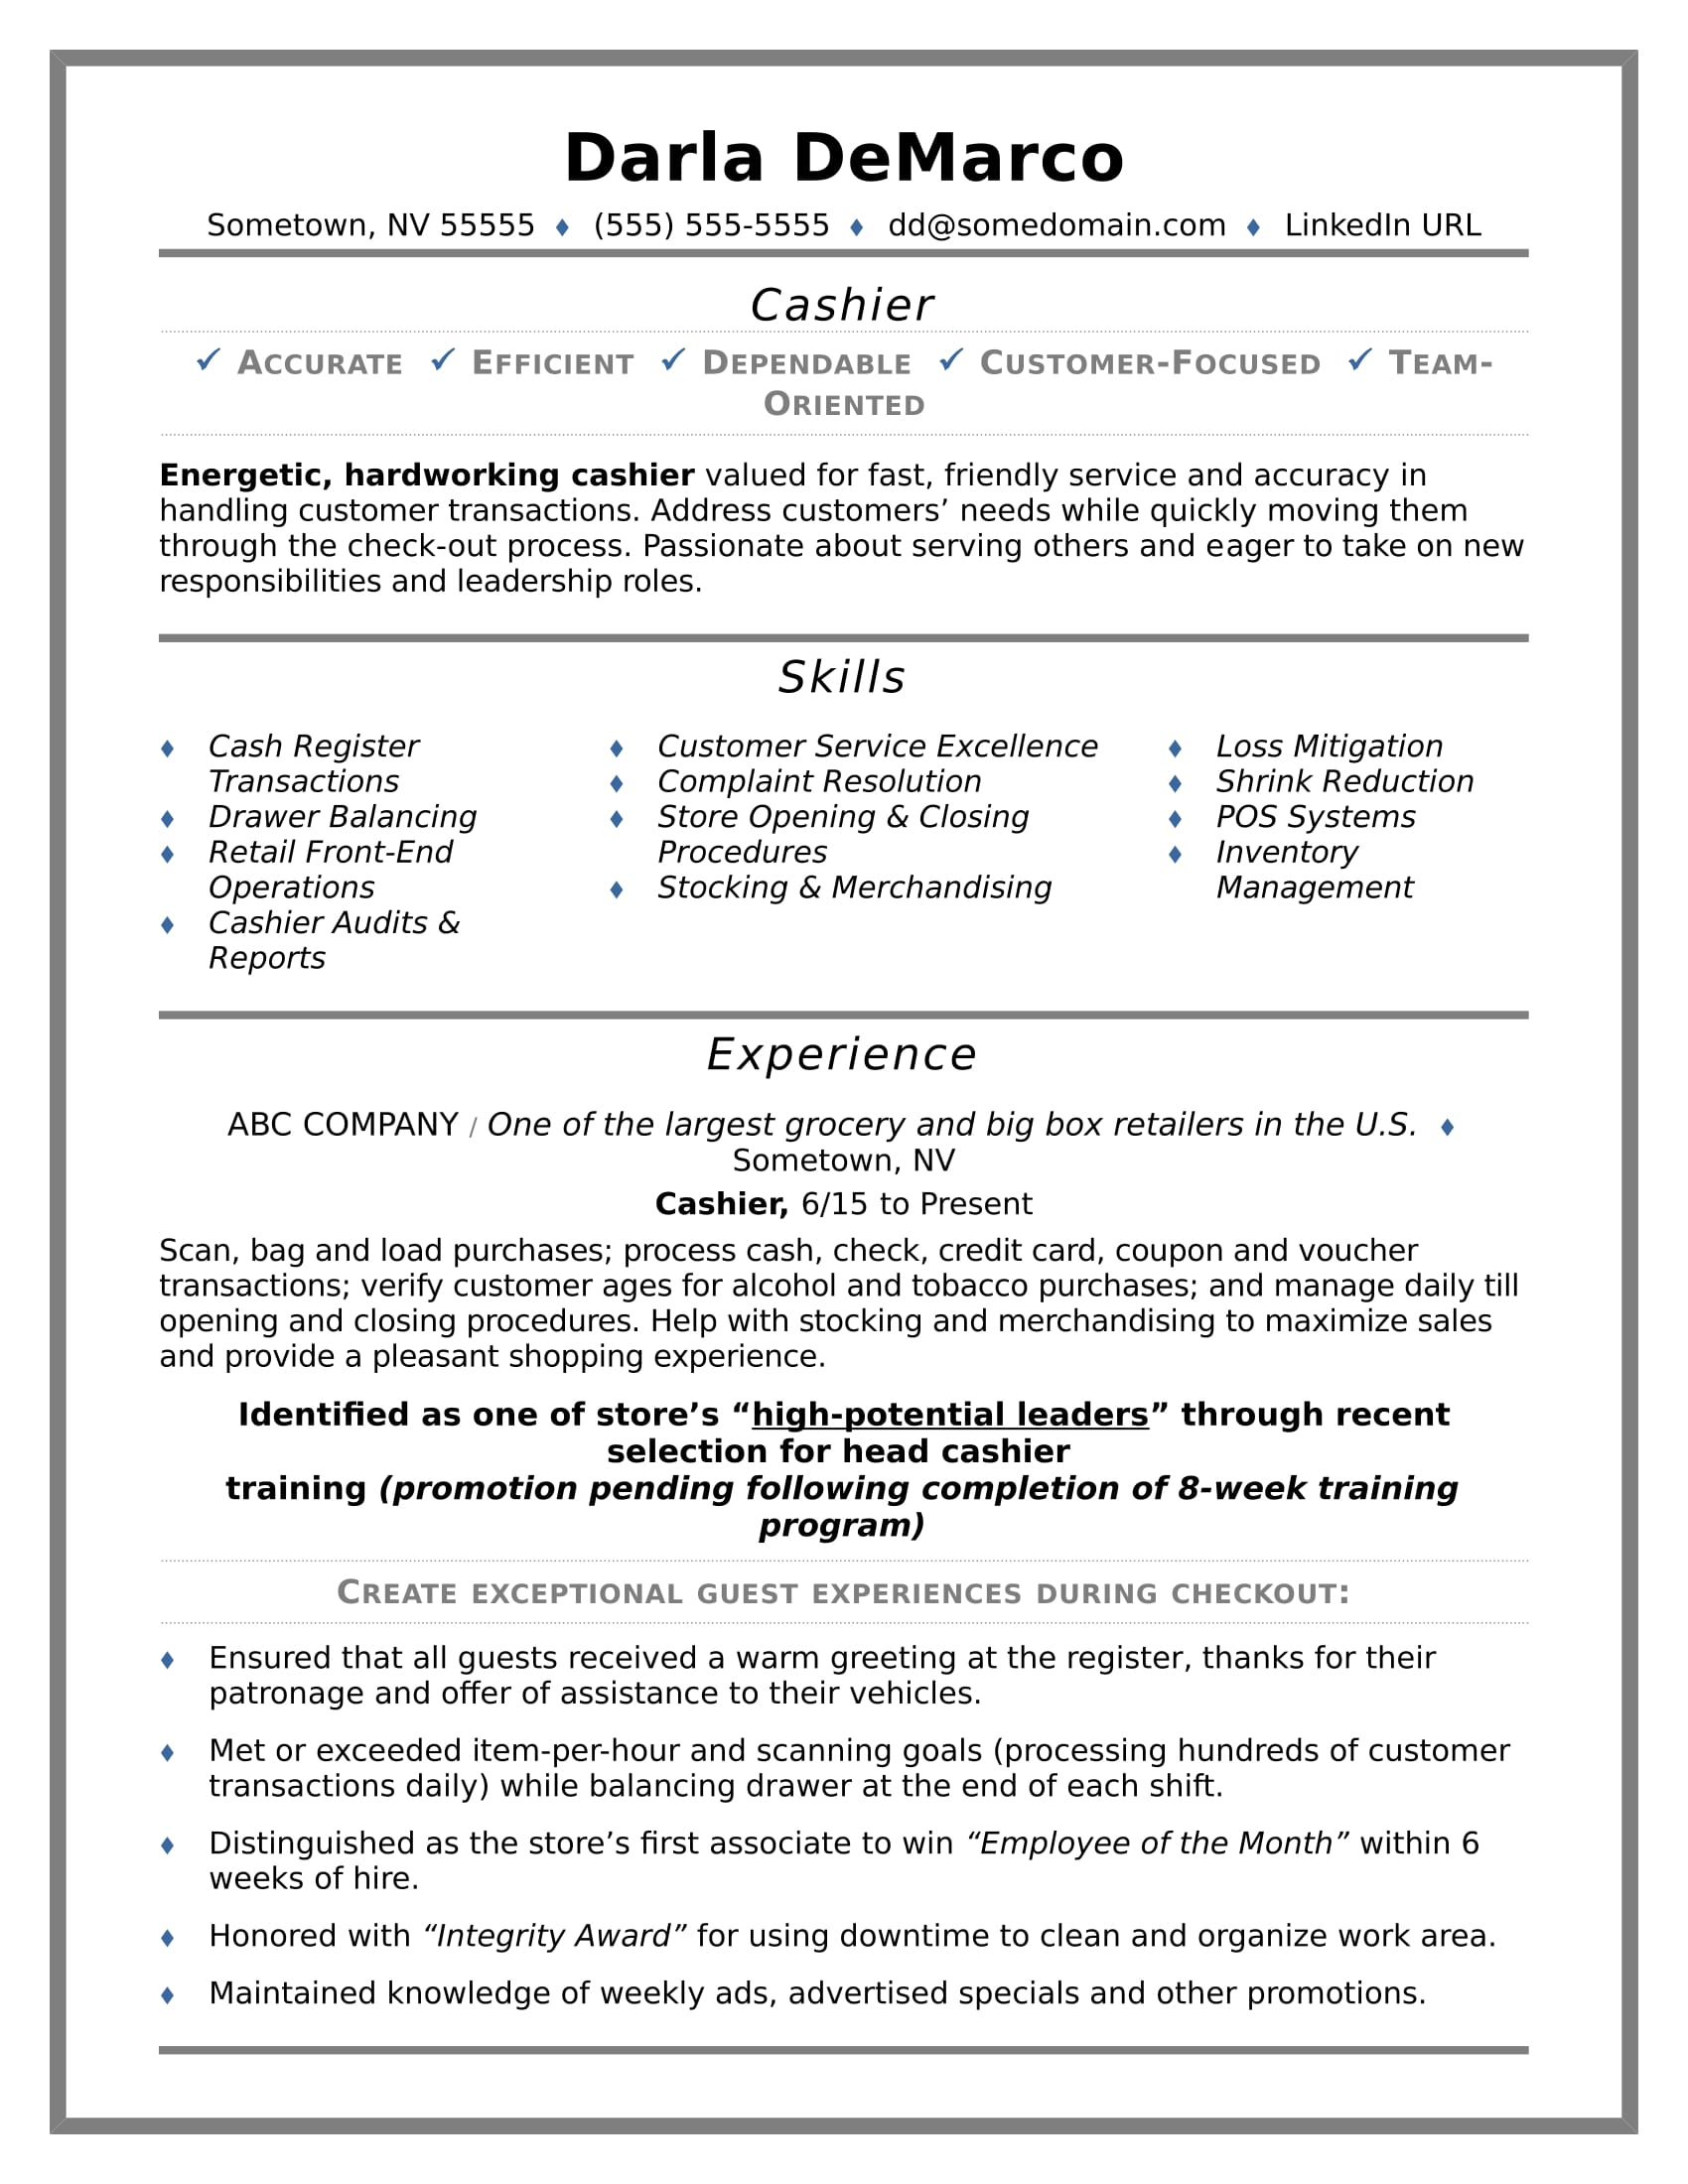 cashier resume sample - Winning Resume Template